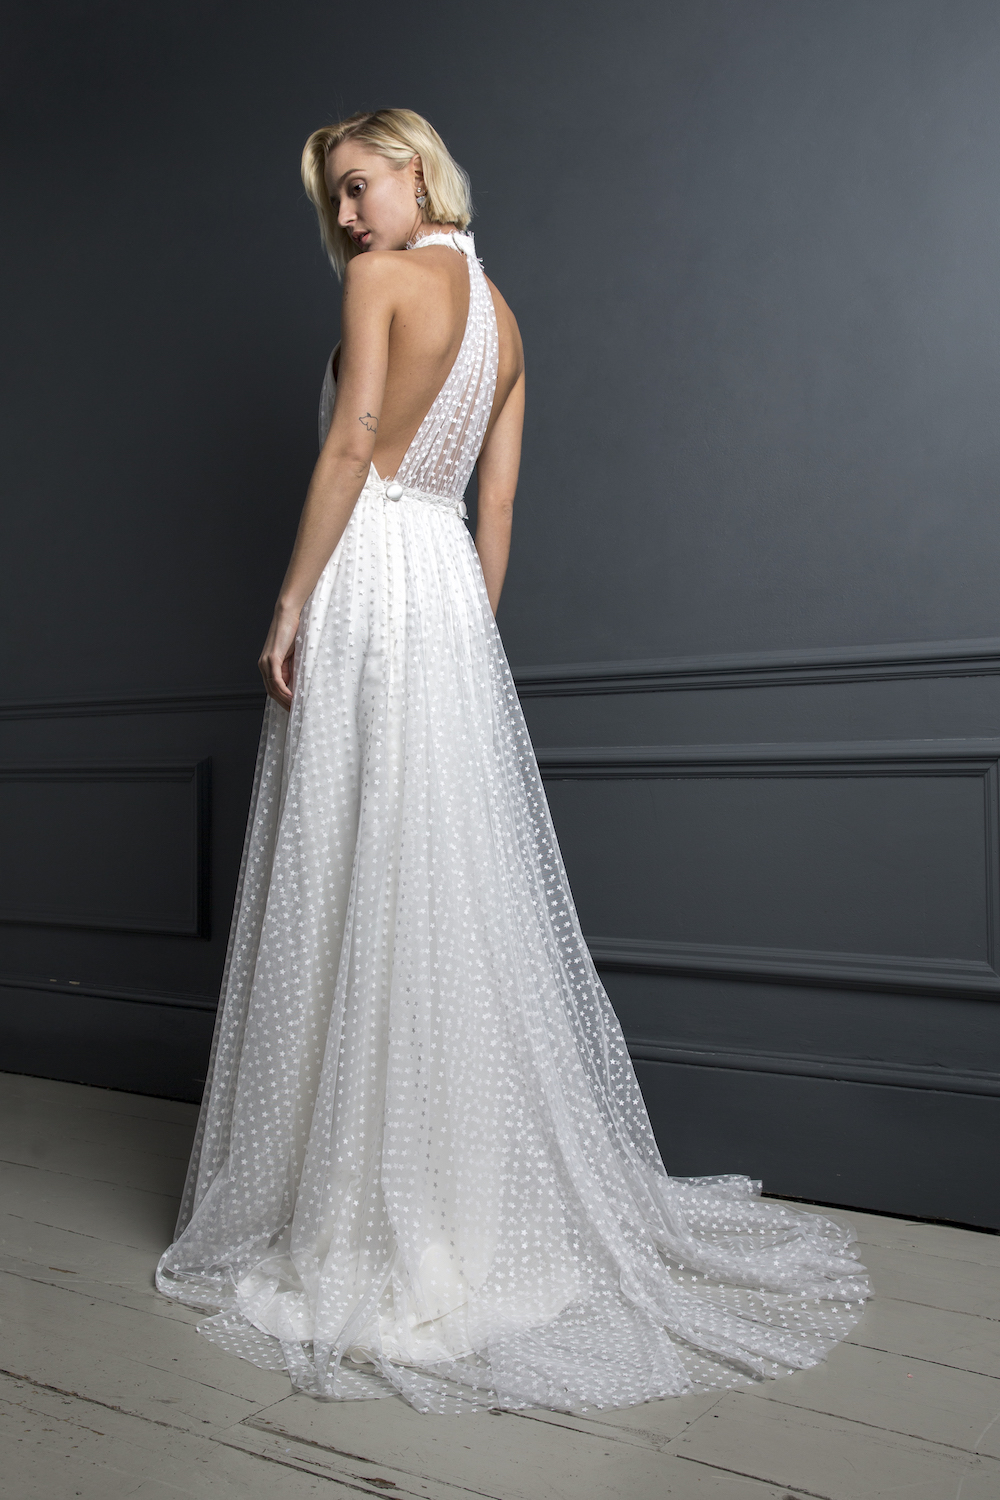 LUKAS DRESS | WEDDING DRESS BY HALFPENNY LONDON